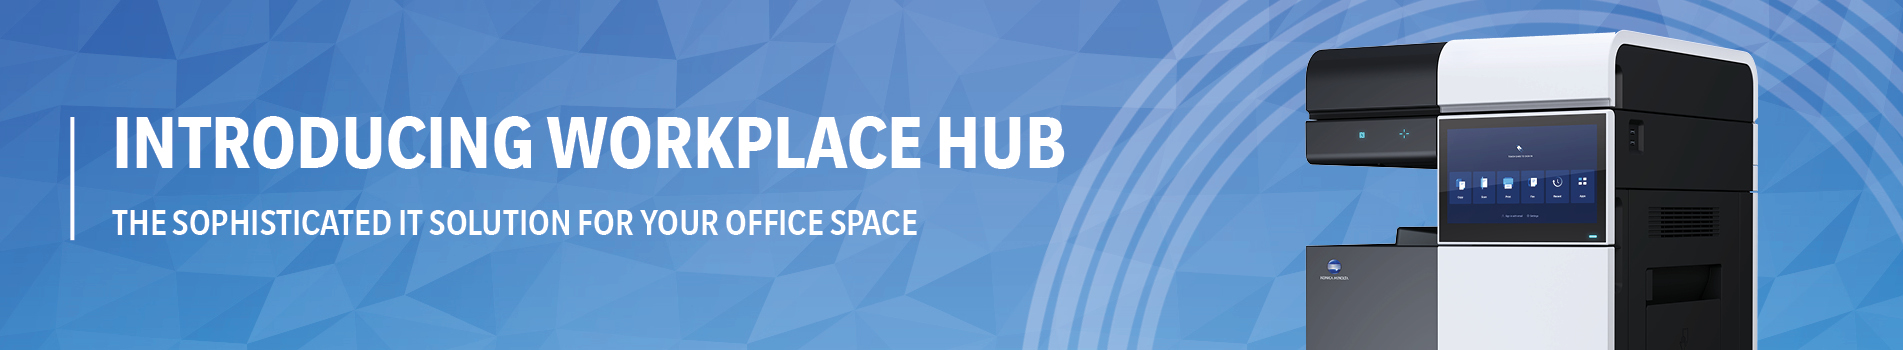 Introducing Hub. The sophisticated IT Solution for your office space